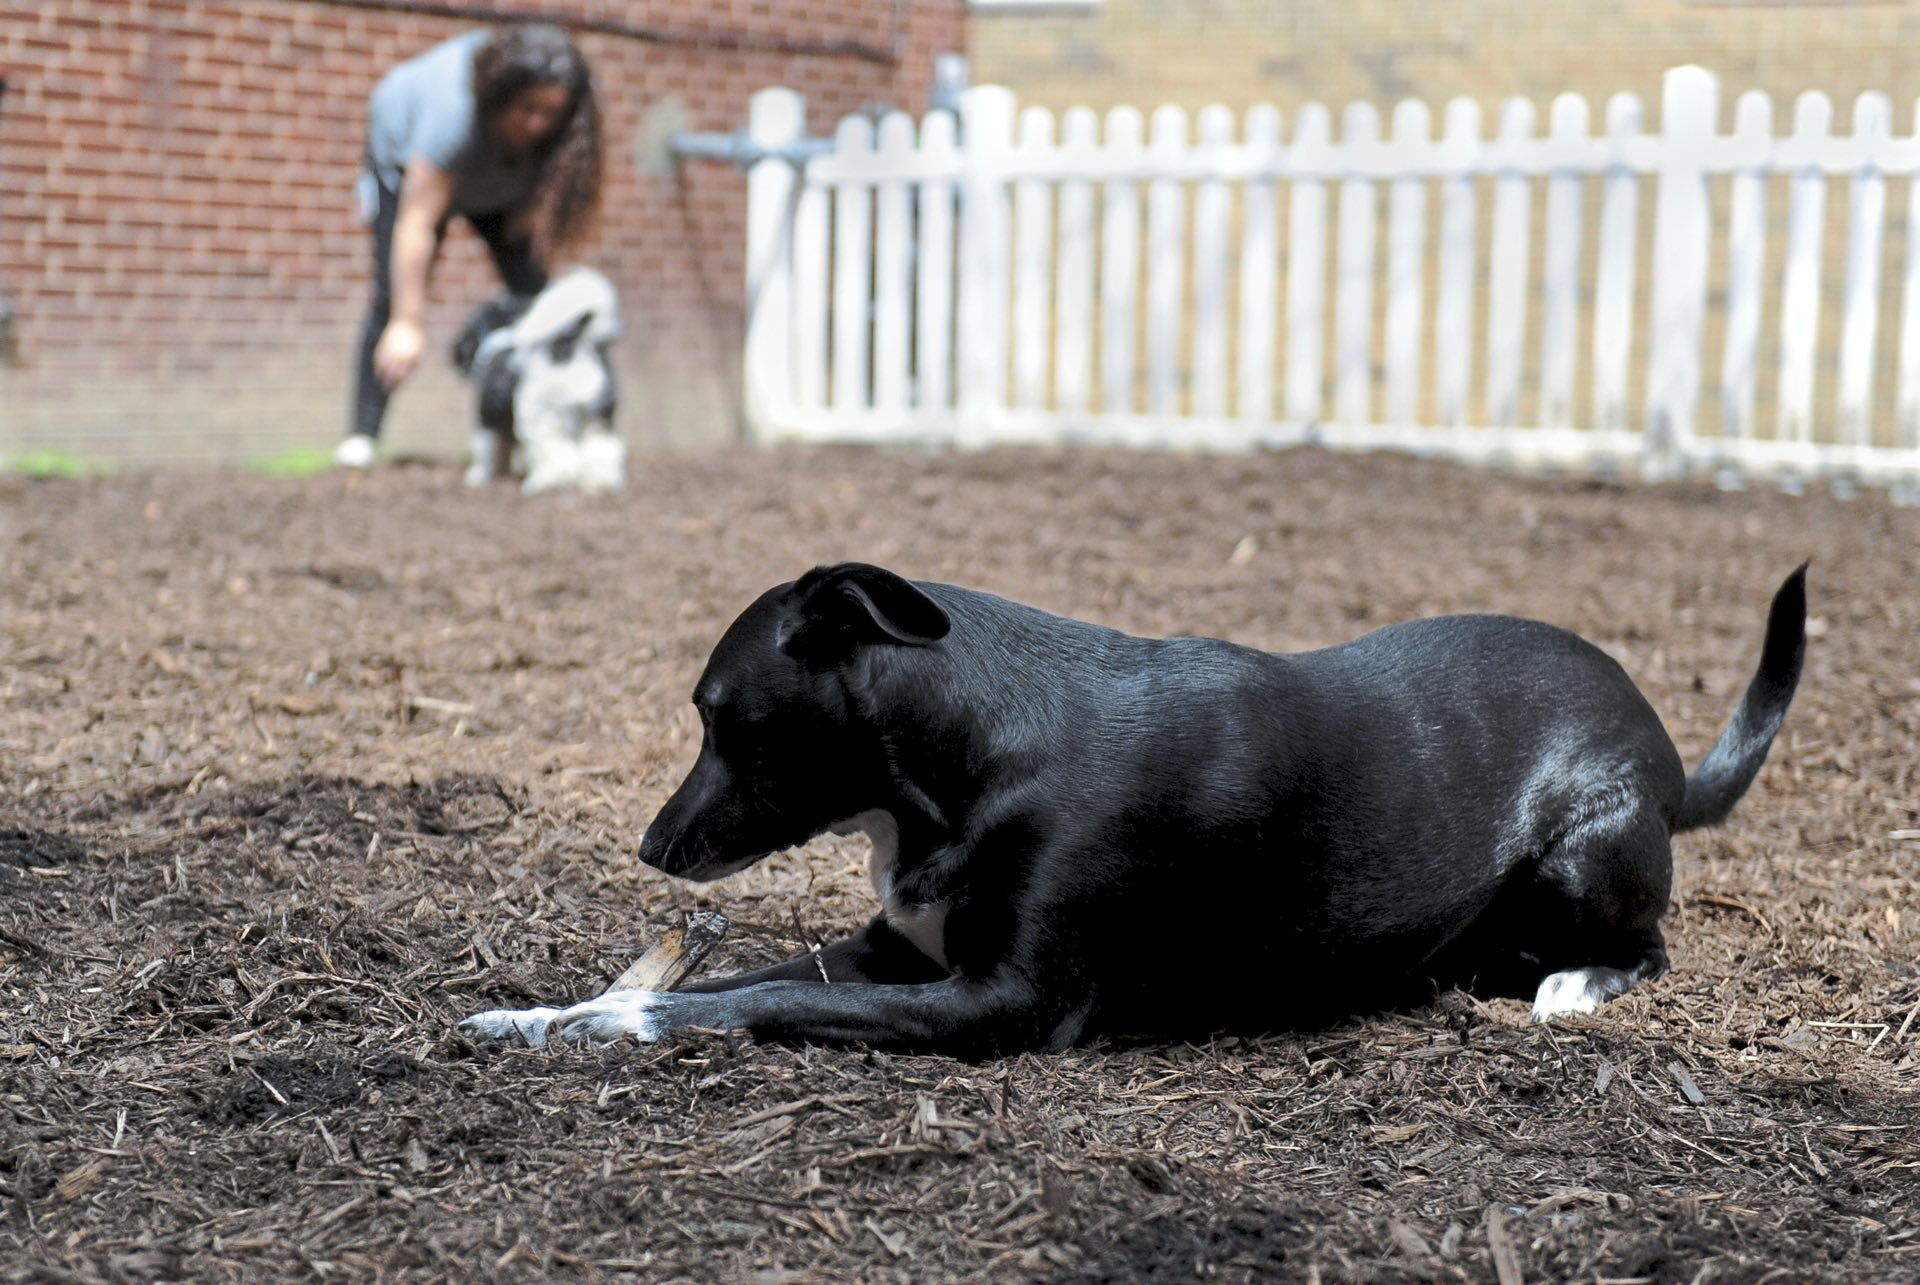 Quincey, 2, enjoys chewing on a stick in the new dog park at the Shadyside Inn All Suites Hotel, one of the new dog-friendly design and amenities offered at the hotel. (Pam Panchak/Post-Gazette)